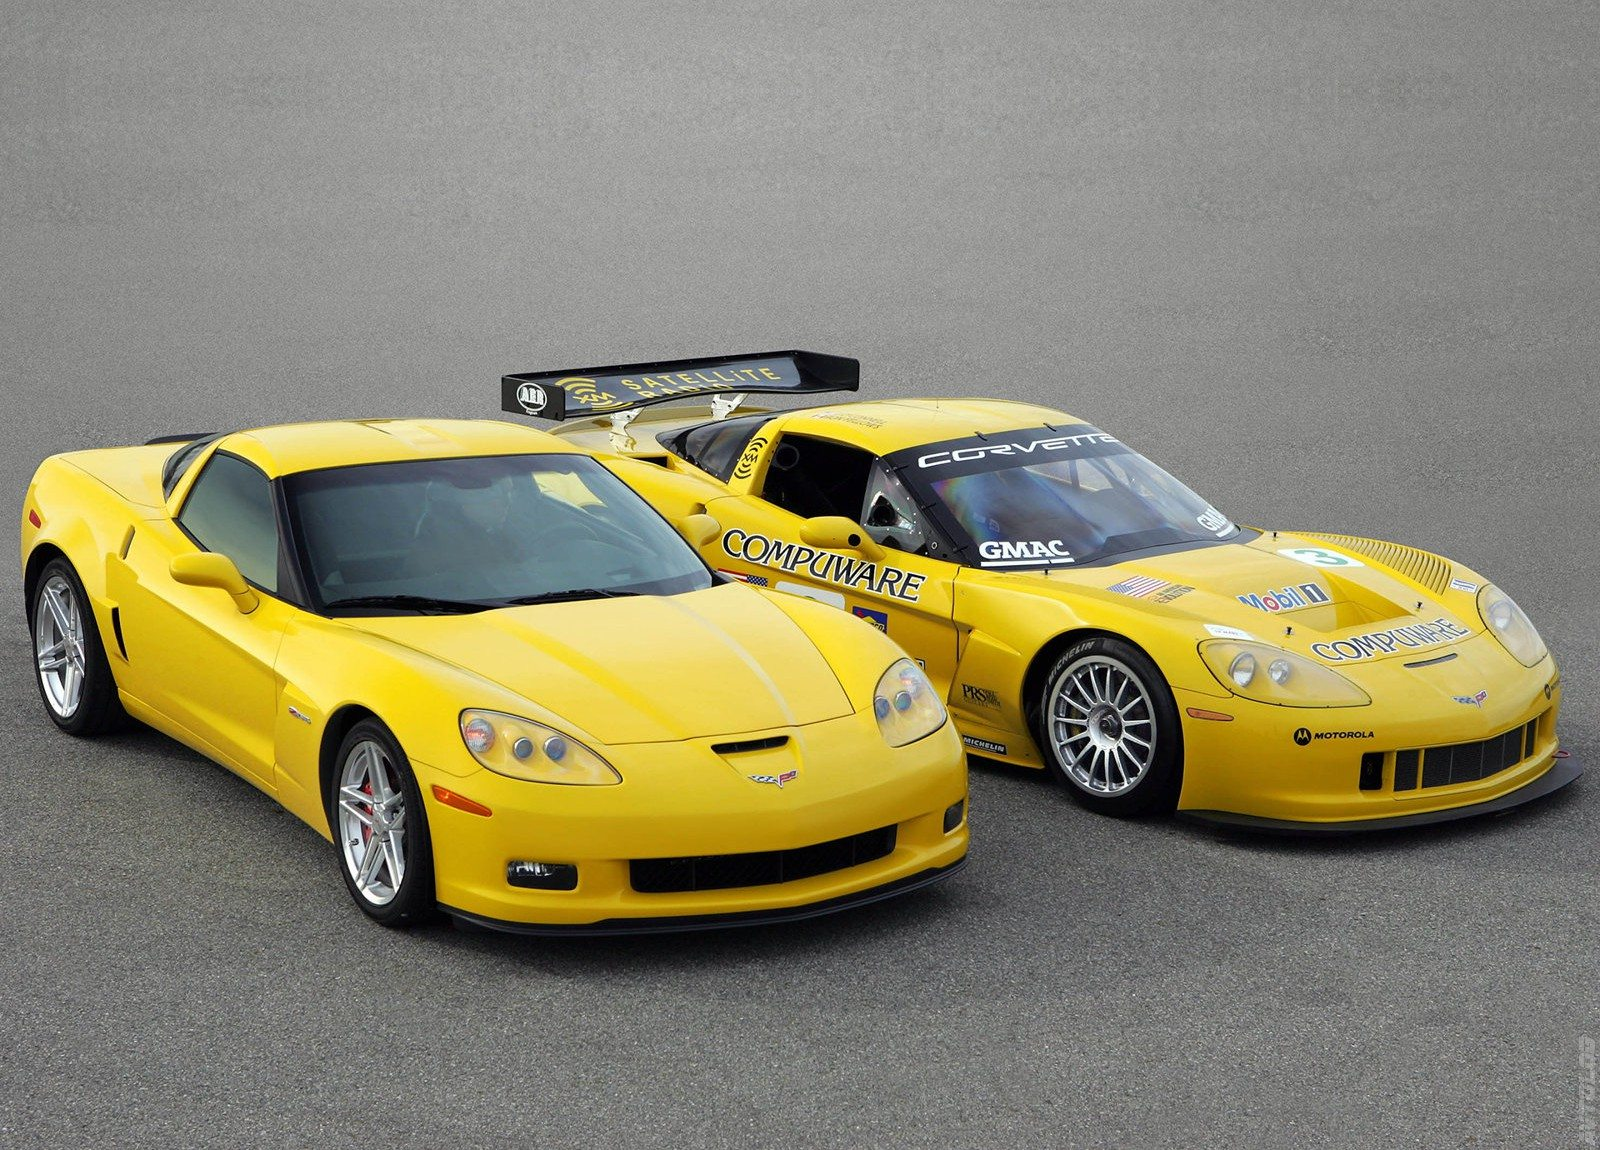 The 2006 Z06 Was Developed From Lessons Learned On C5 R Corvette Race Car During 2004 24 Hours Of Lemans In Turn C6